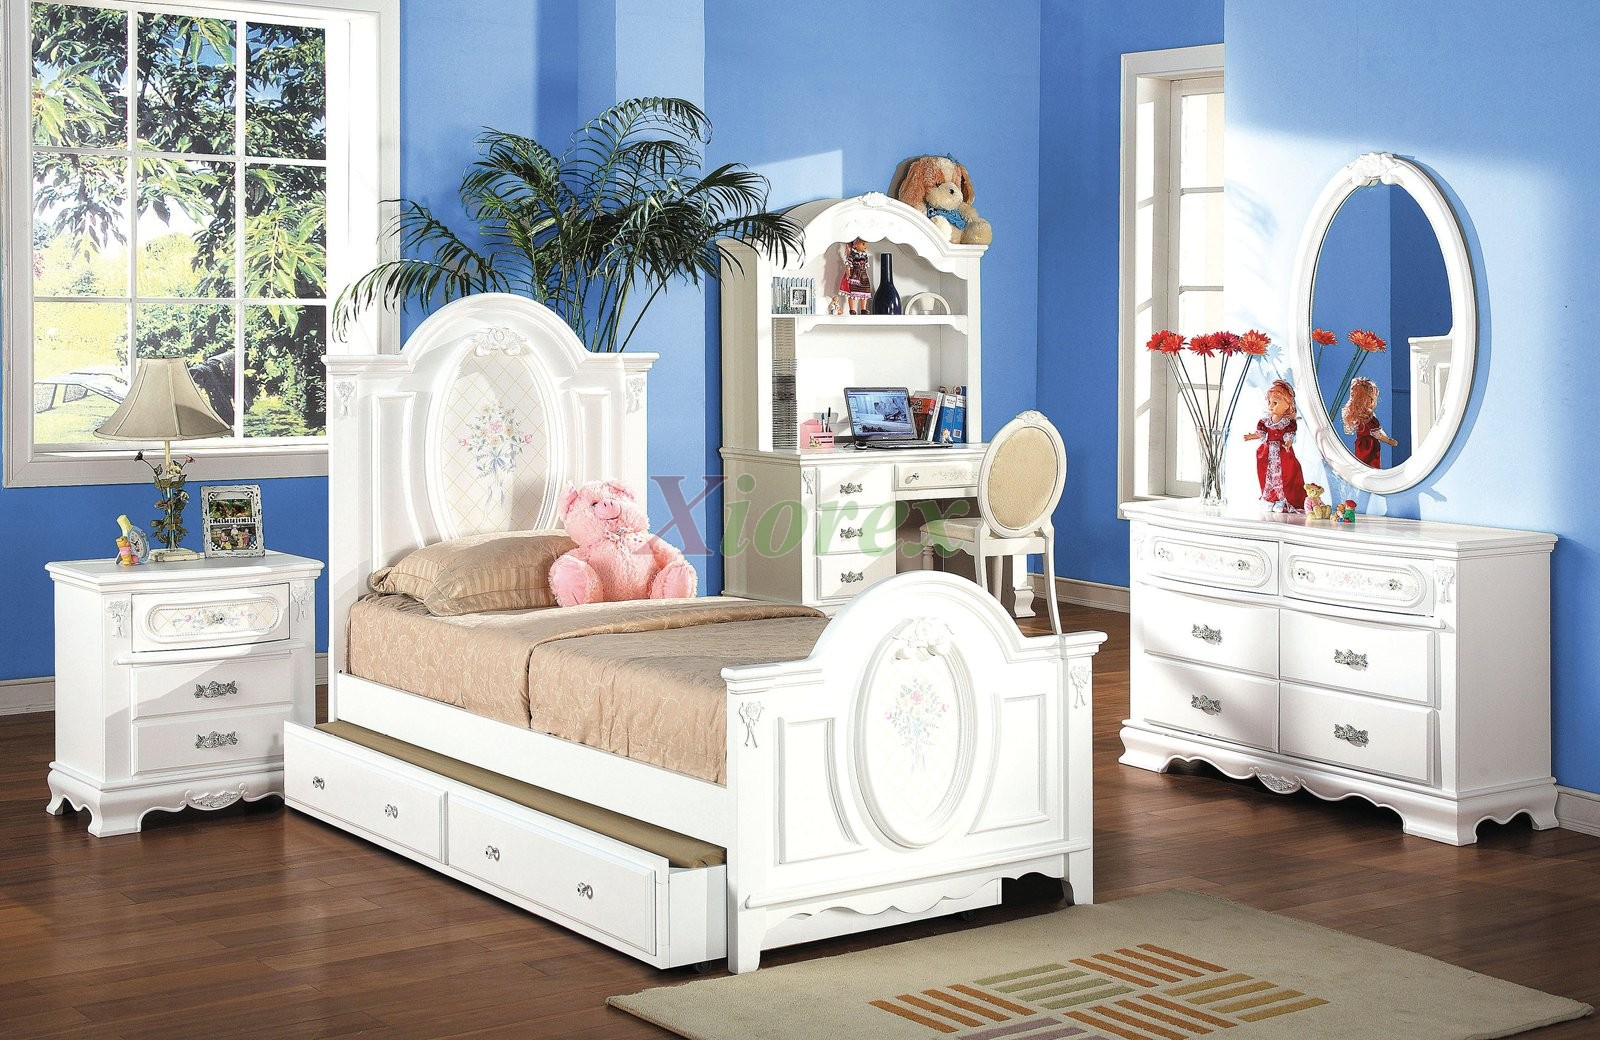 Kids Bedroom Furniture Set with Trundle Bed and Hutch 174 ...